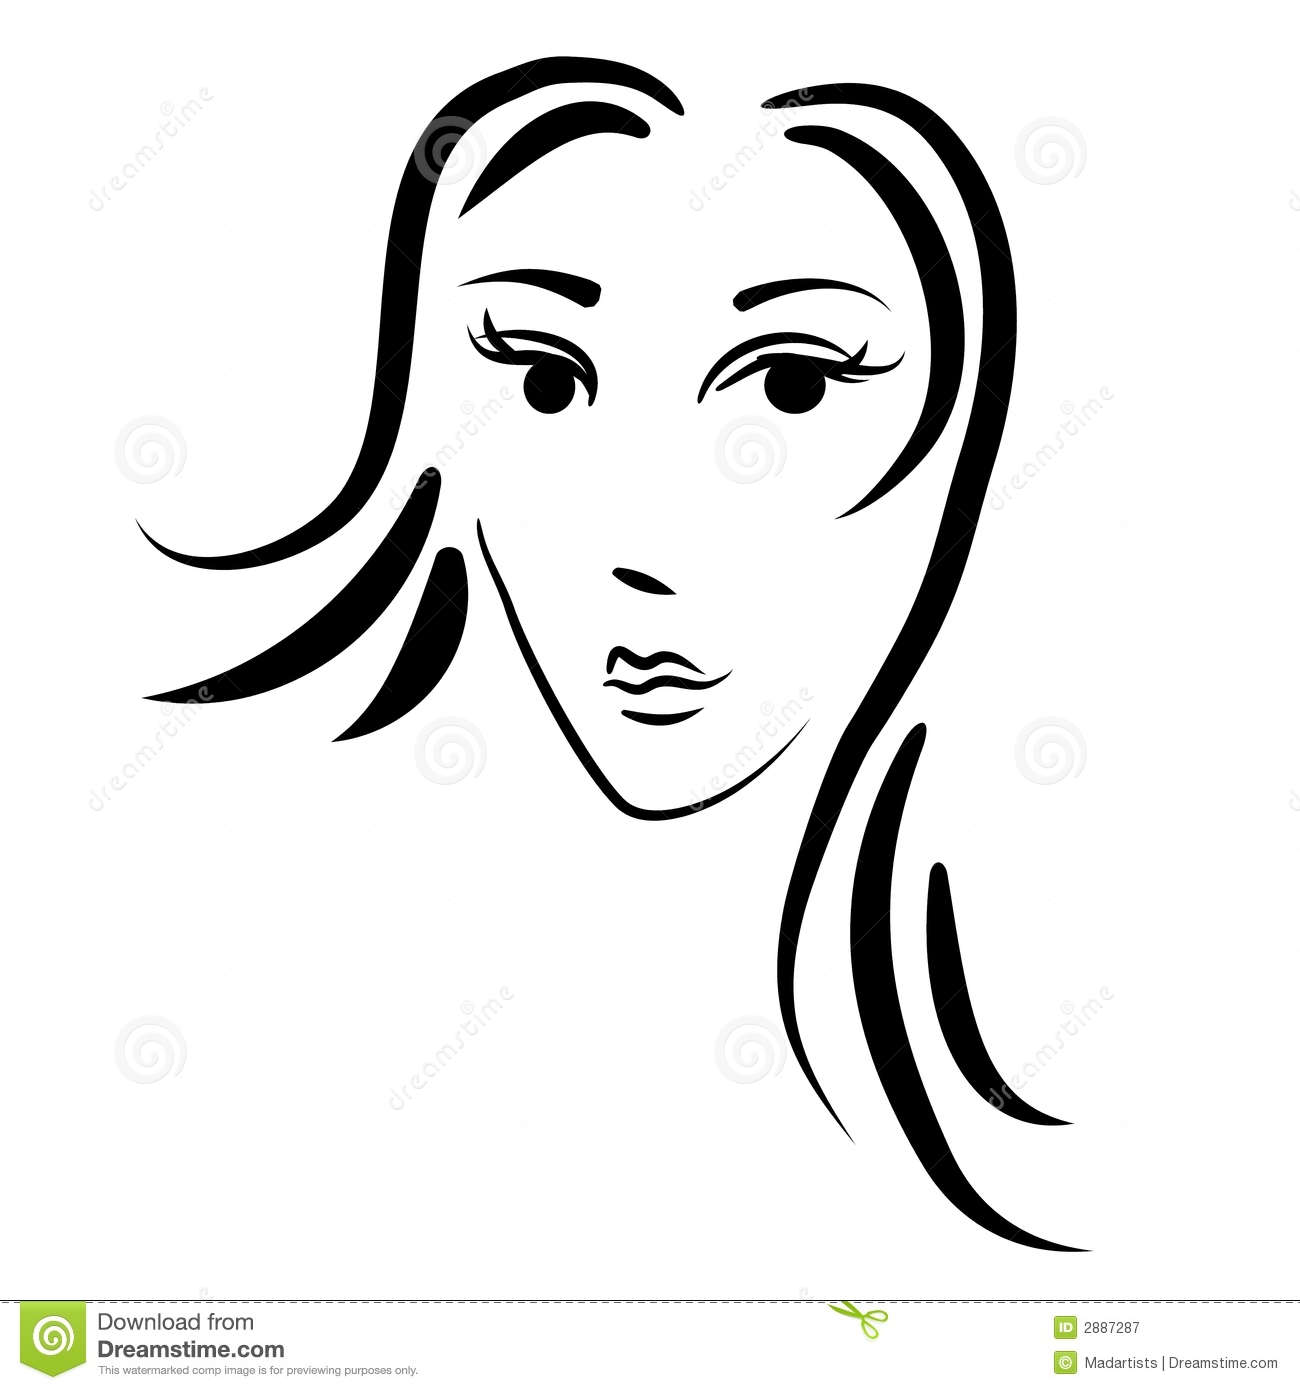 Abstract Woman Face Outline Stock Illustration.